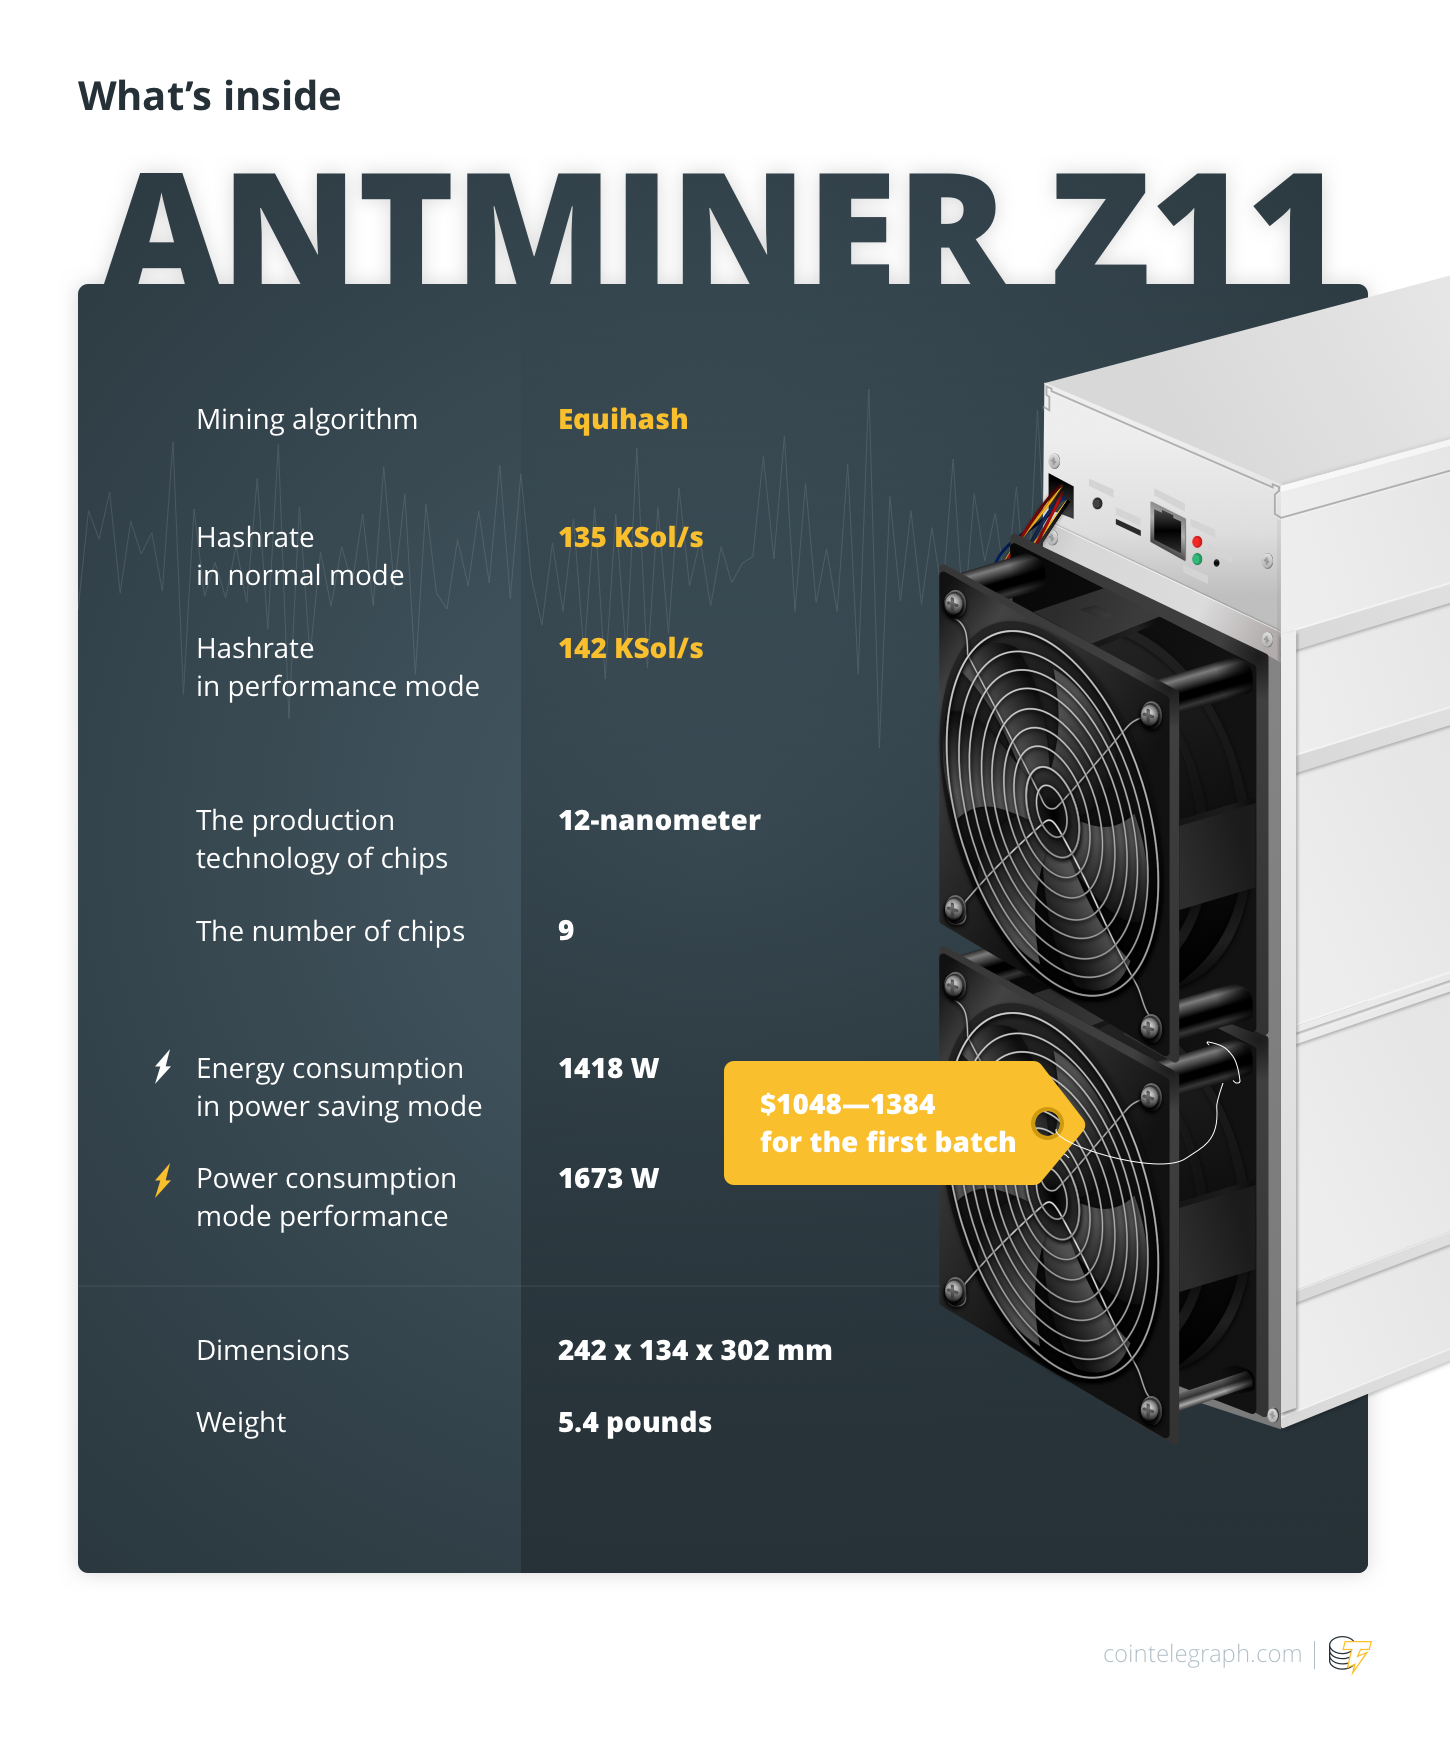 Zcash Exercises Restraint as the Antminer Z11 Release Approaches